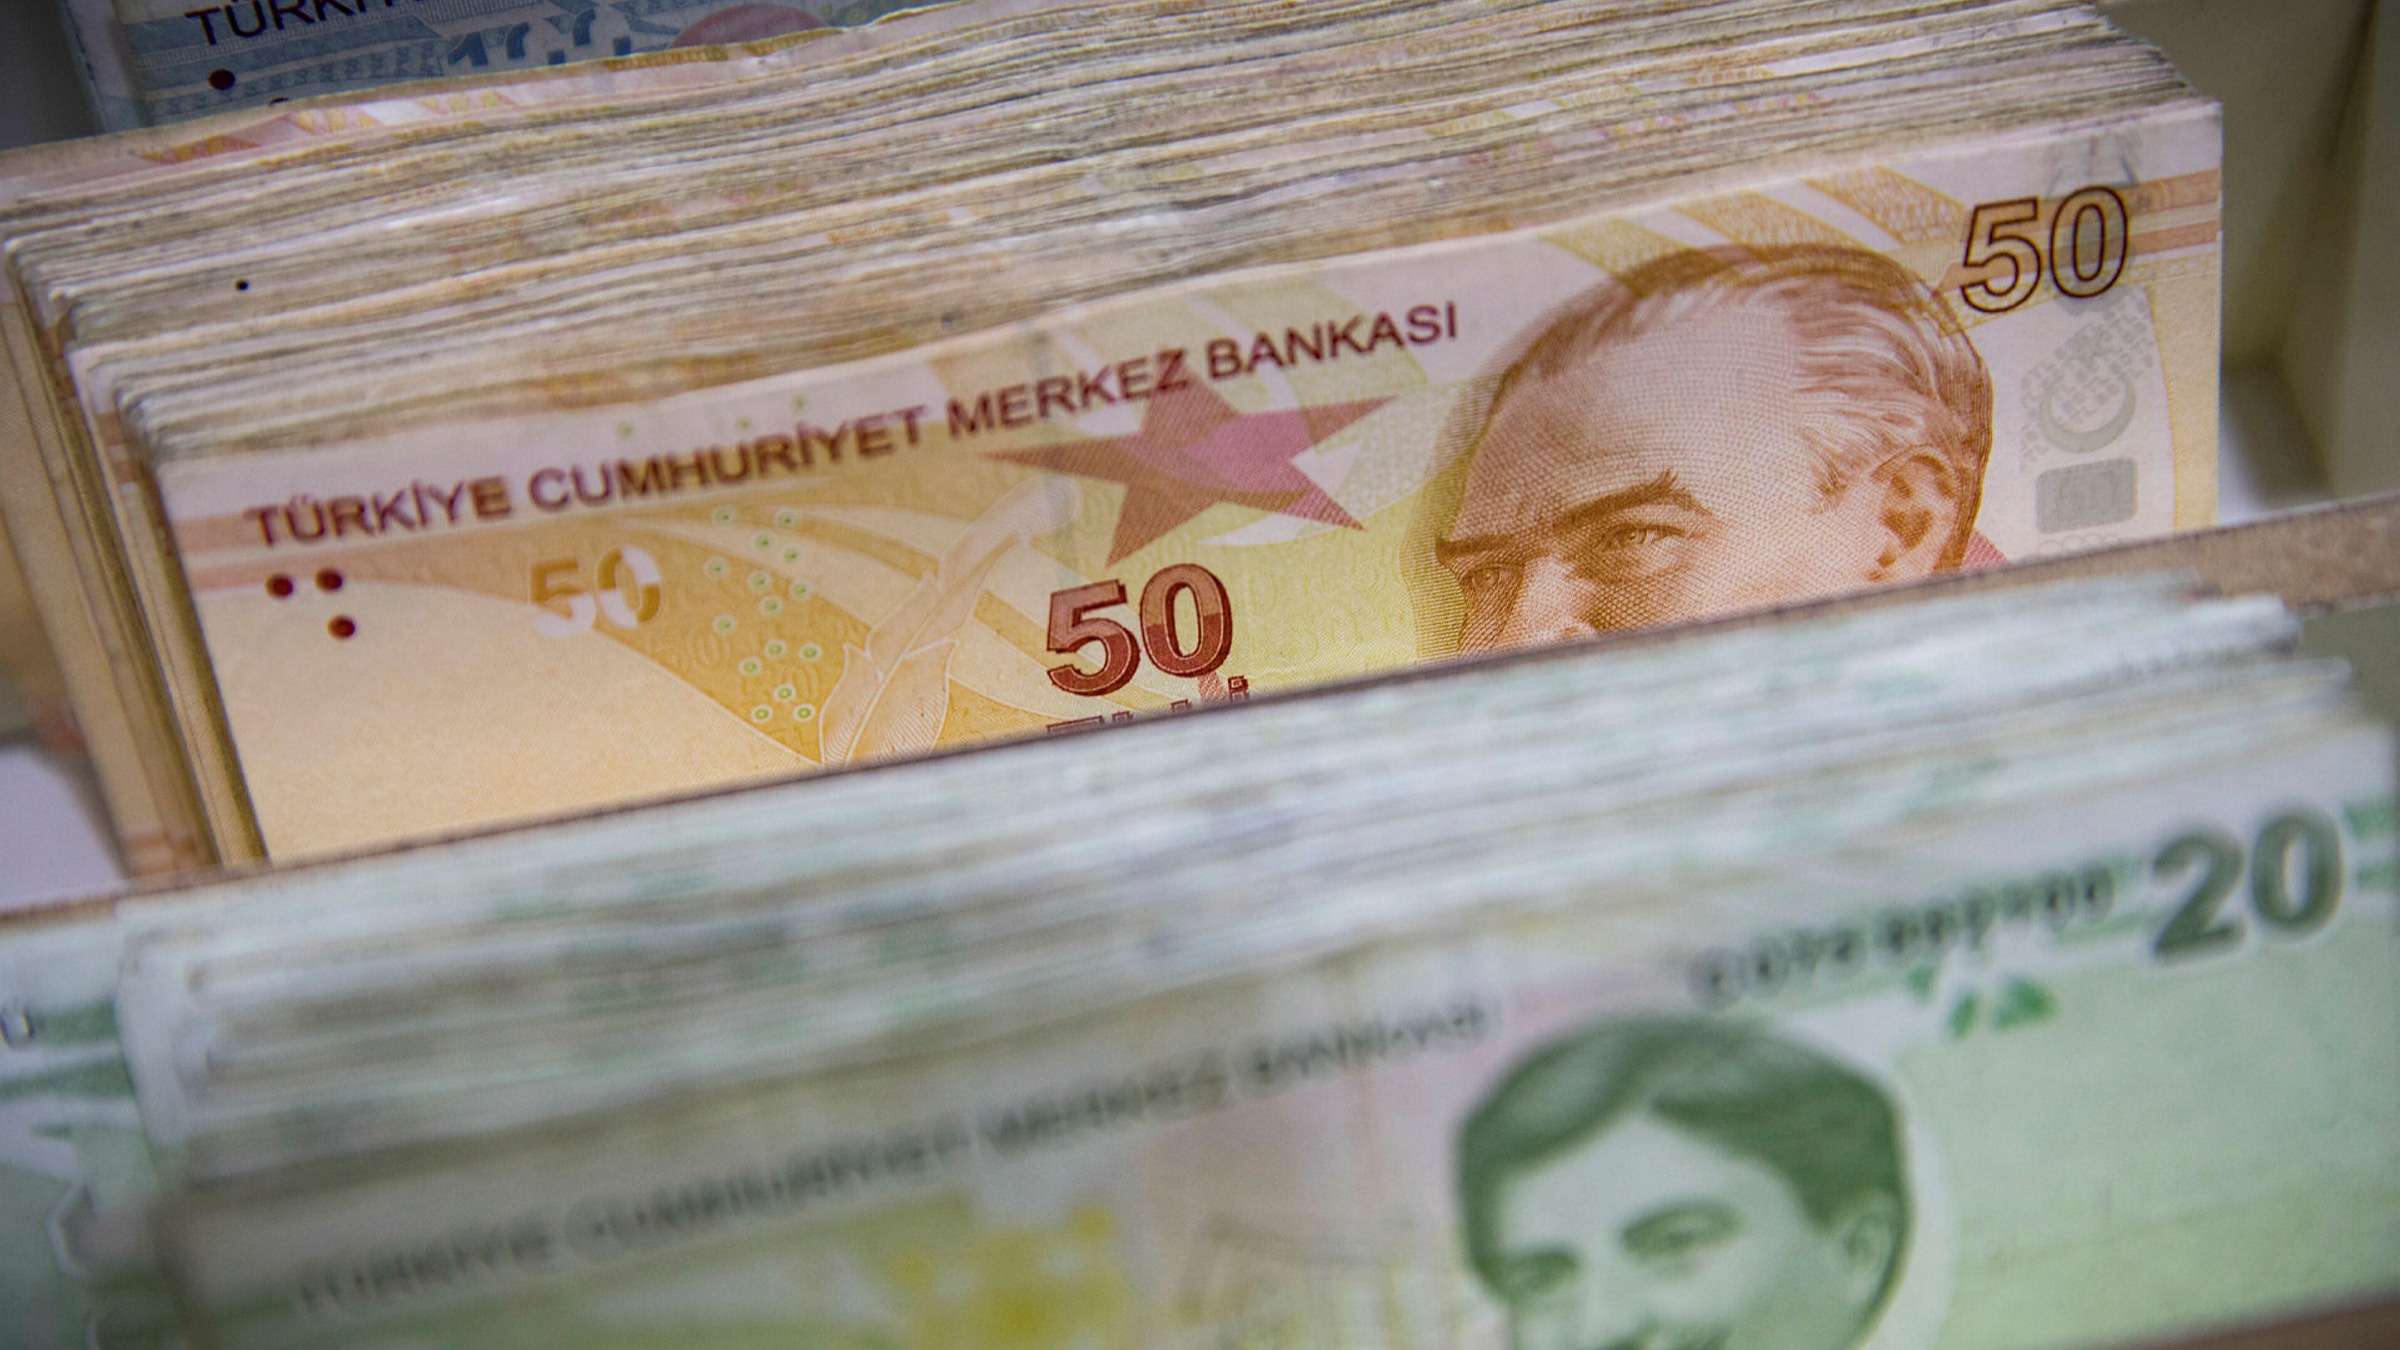 Turkey bans FX trades with UBS, Citi and BNP as lira hits record low |  Financial Times